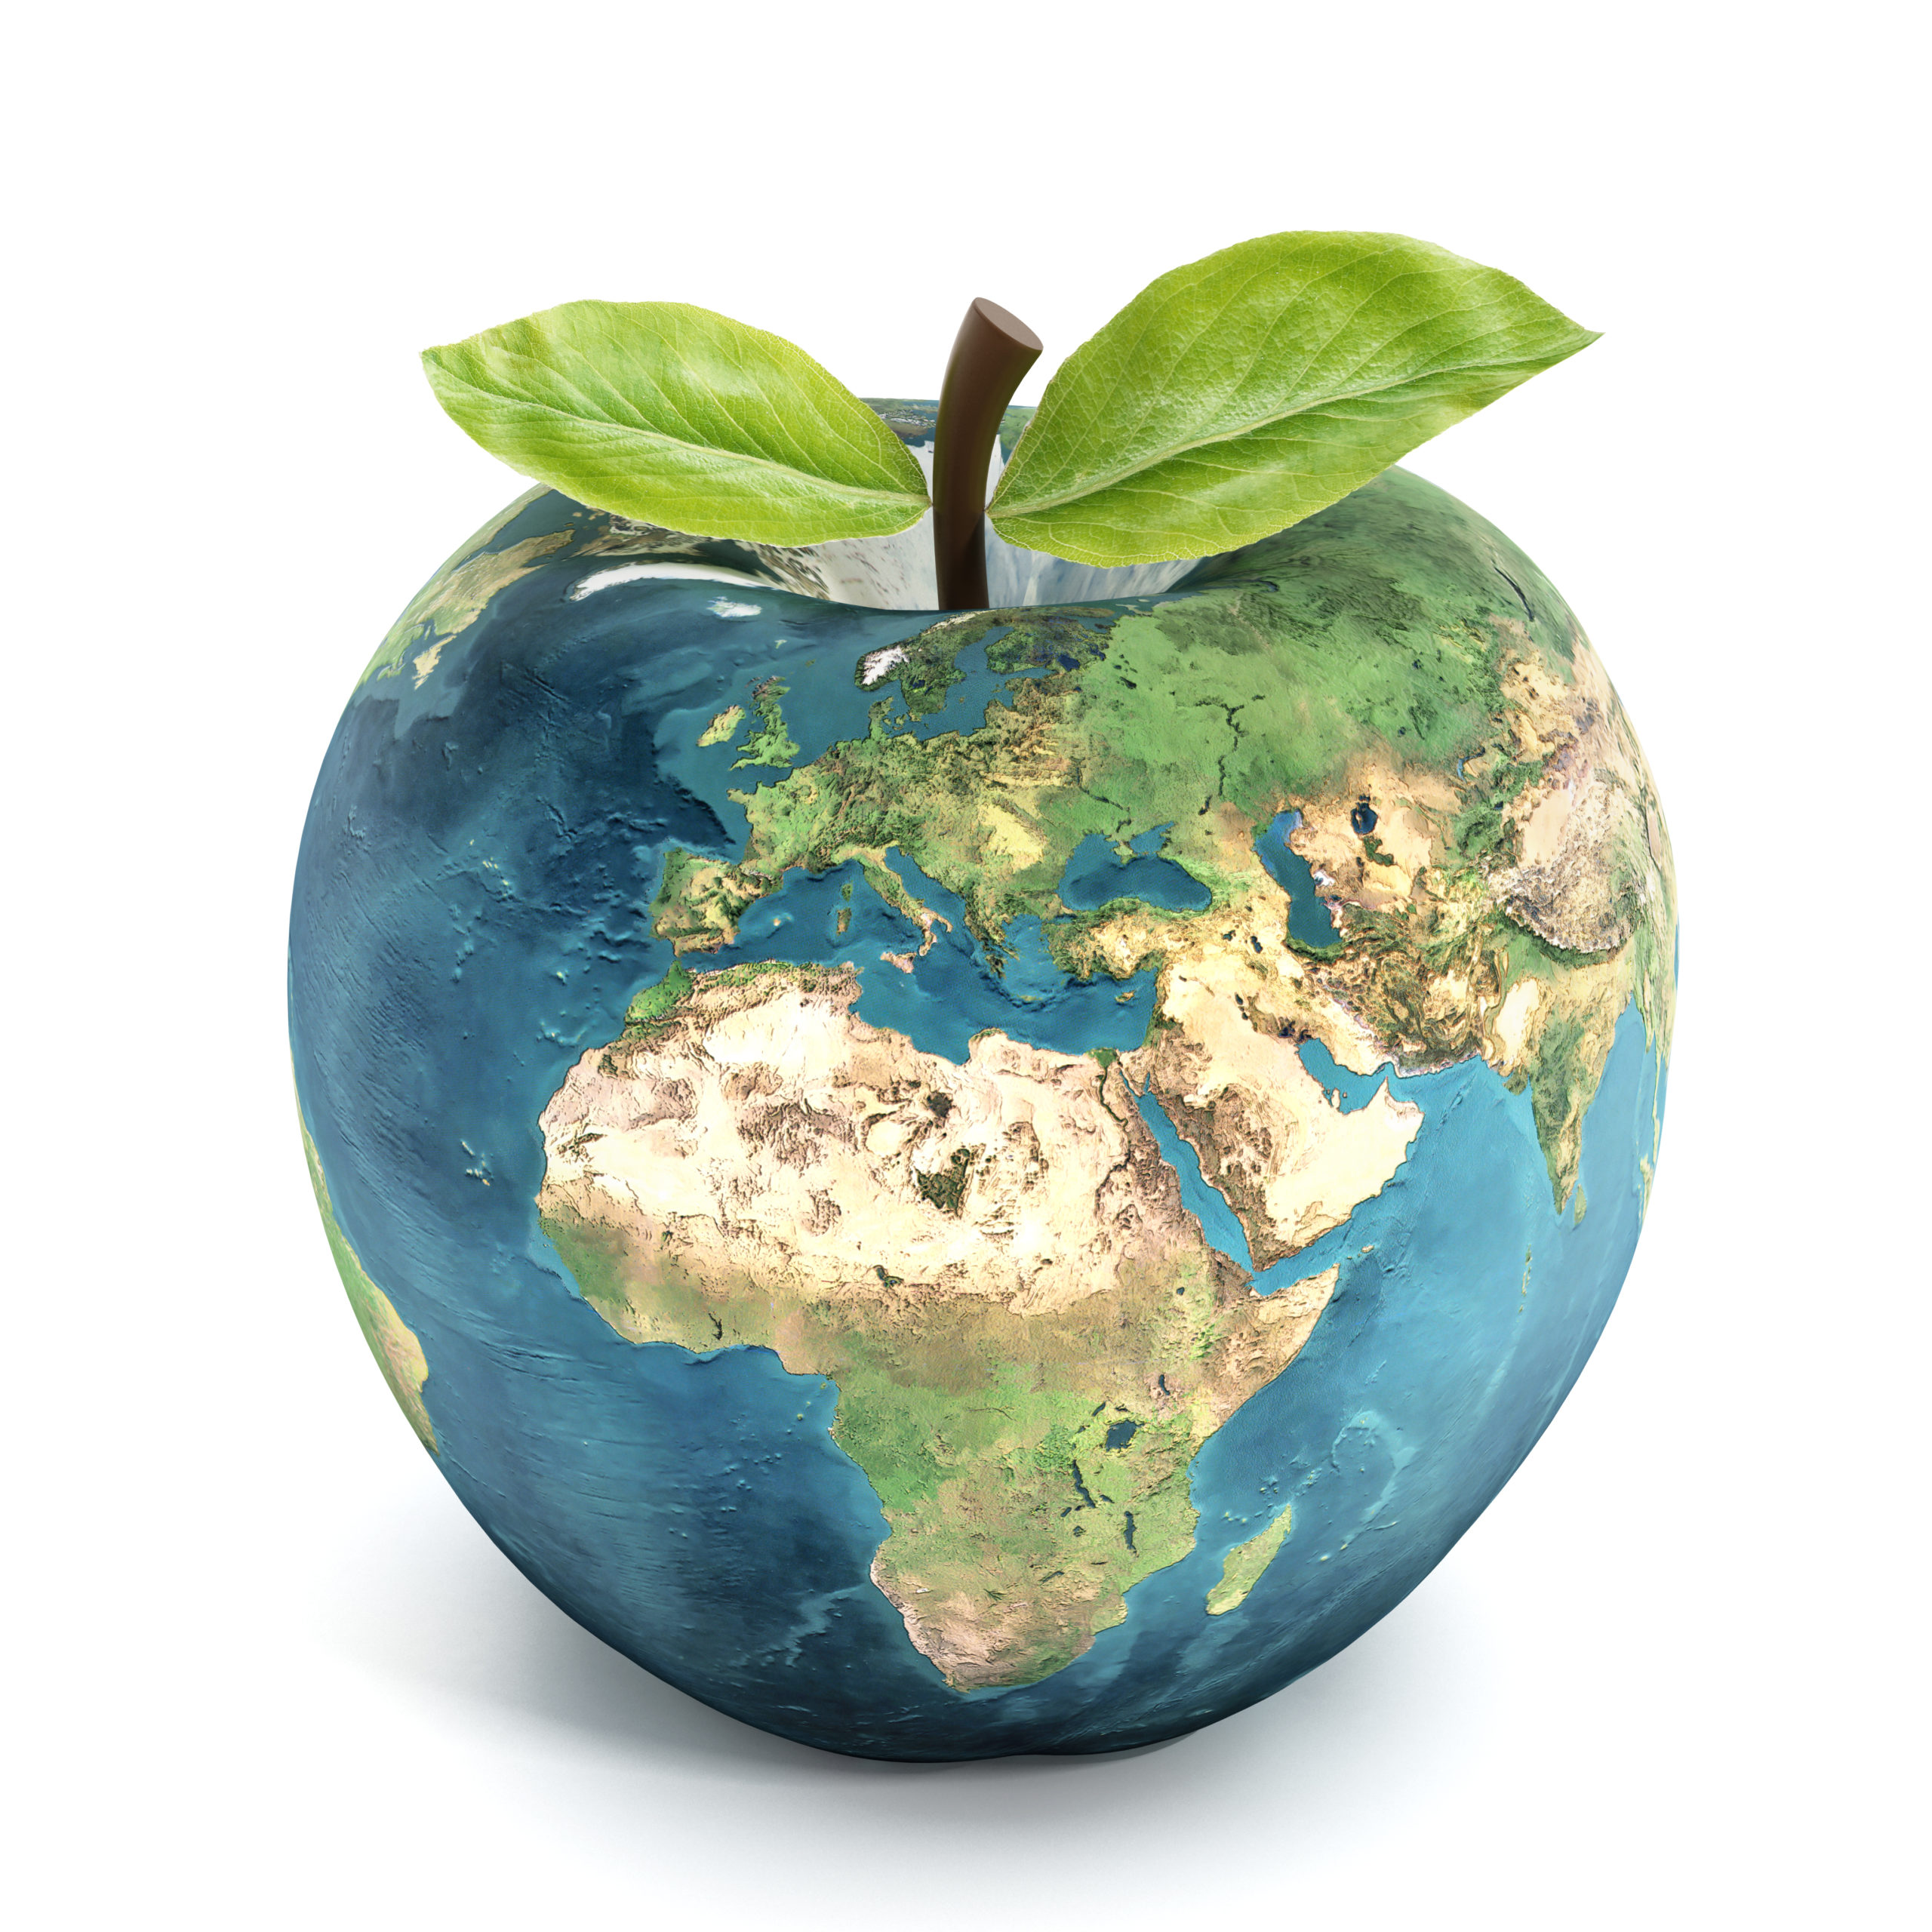 World shaped into an apple